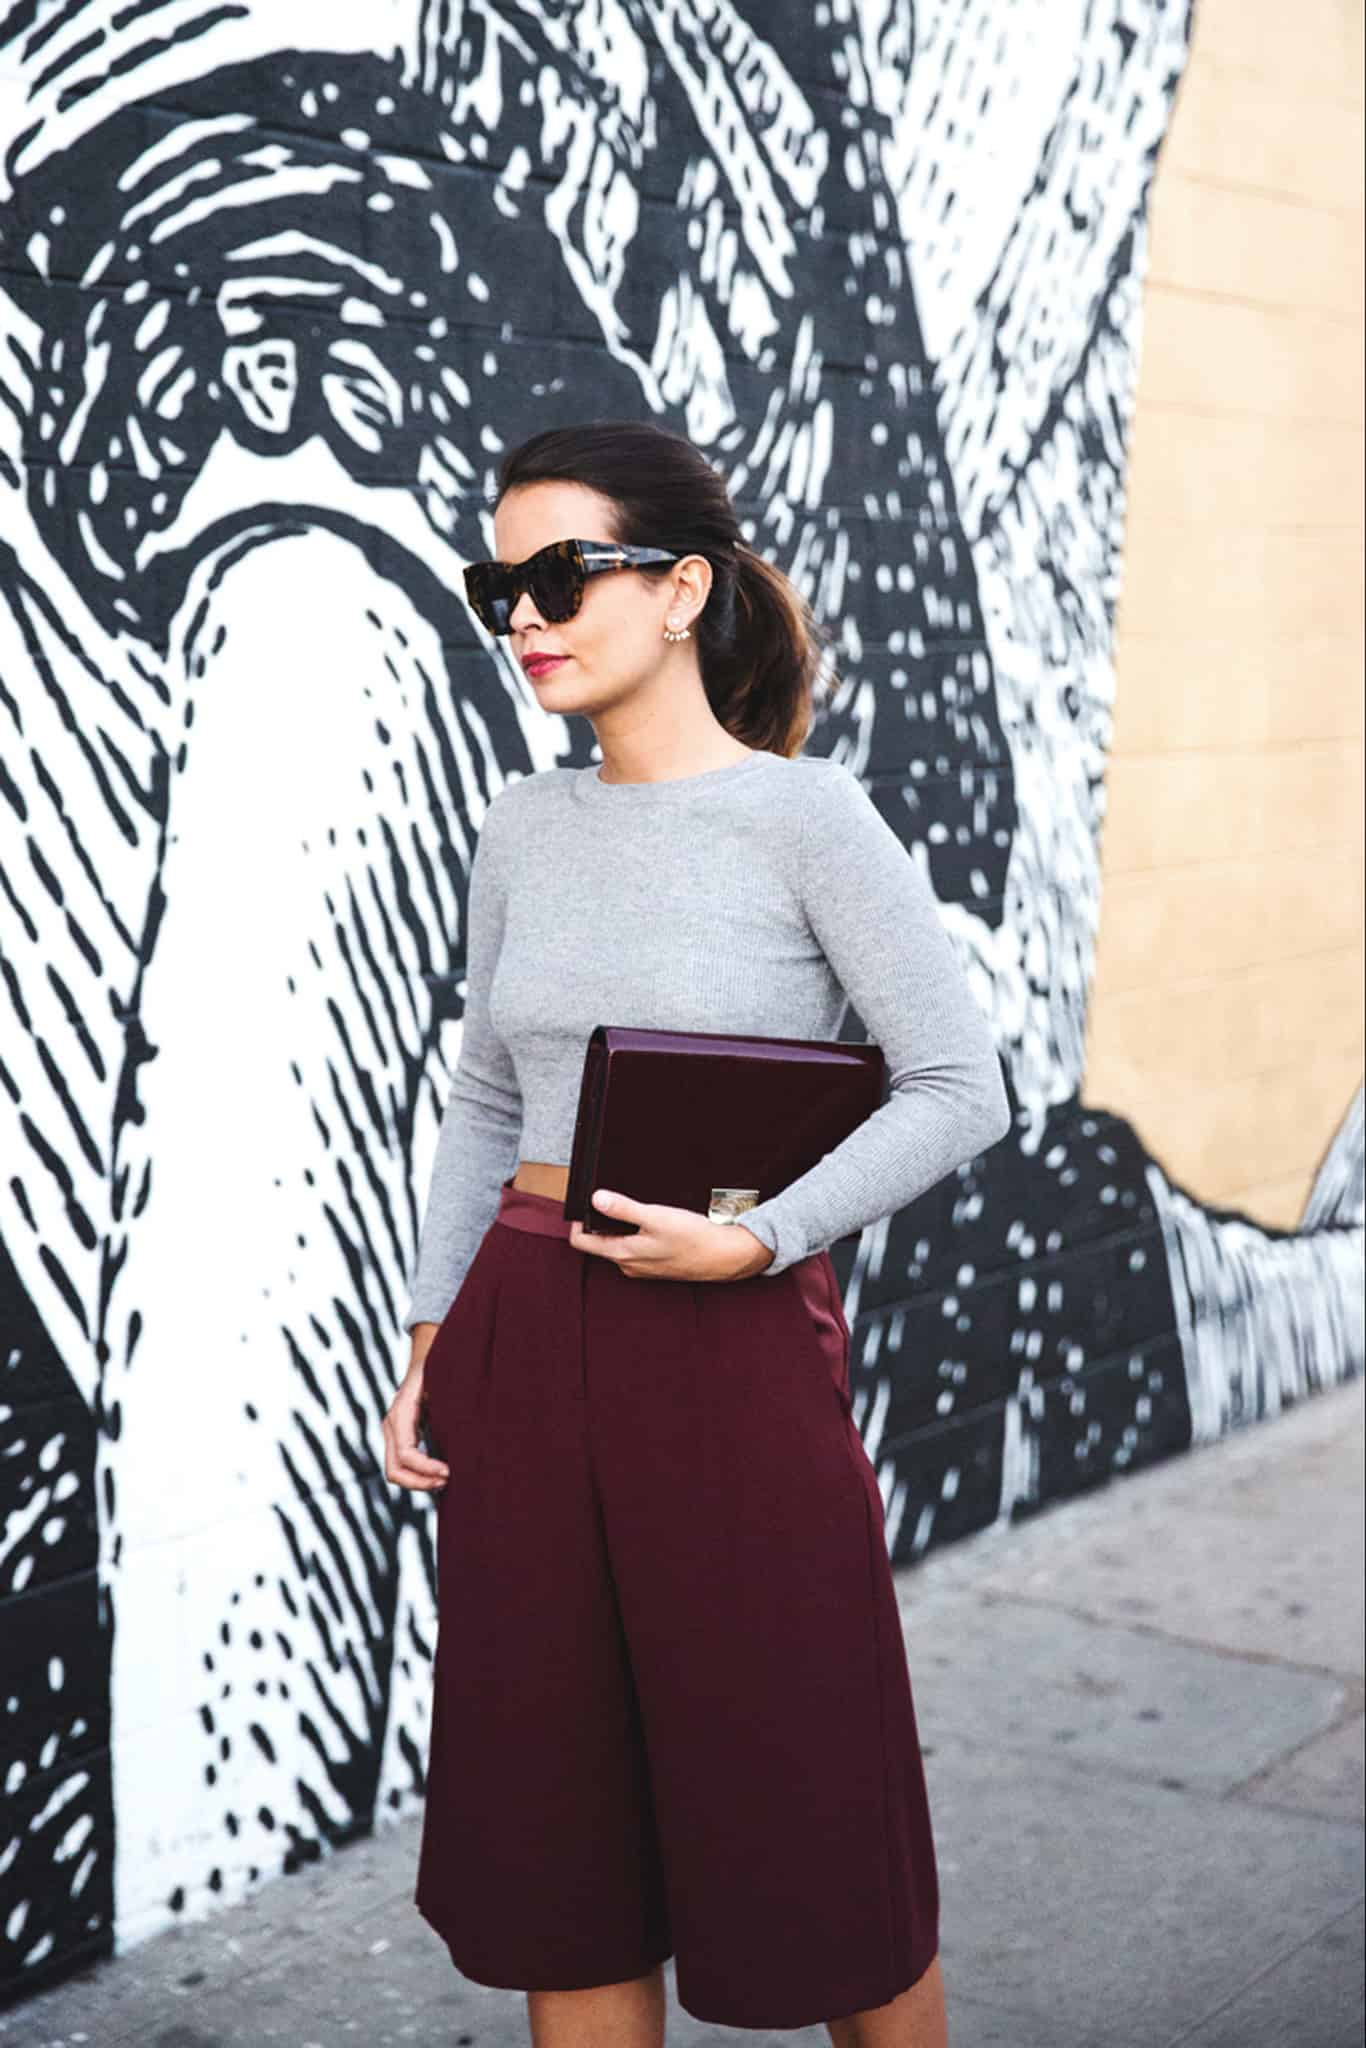 street-style-culottes-spring-trend-1